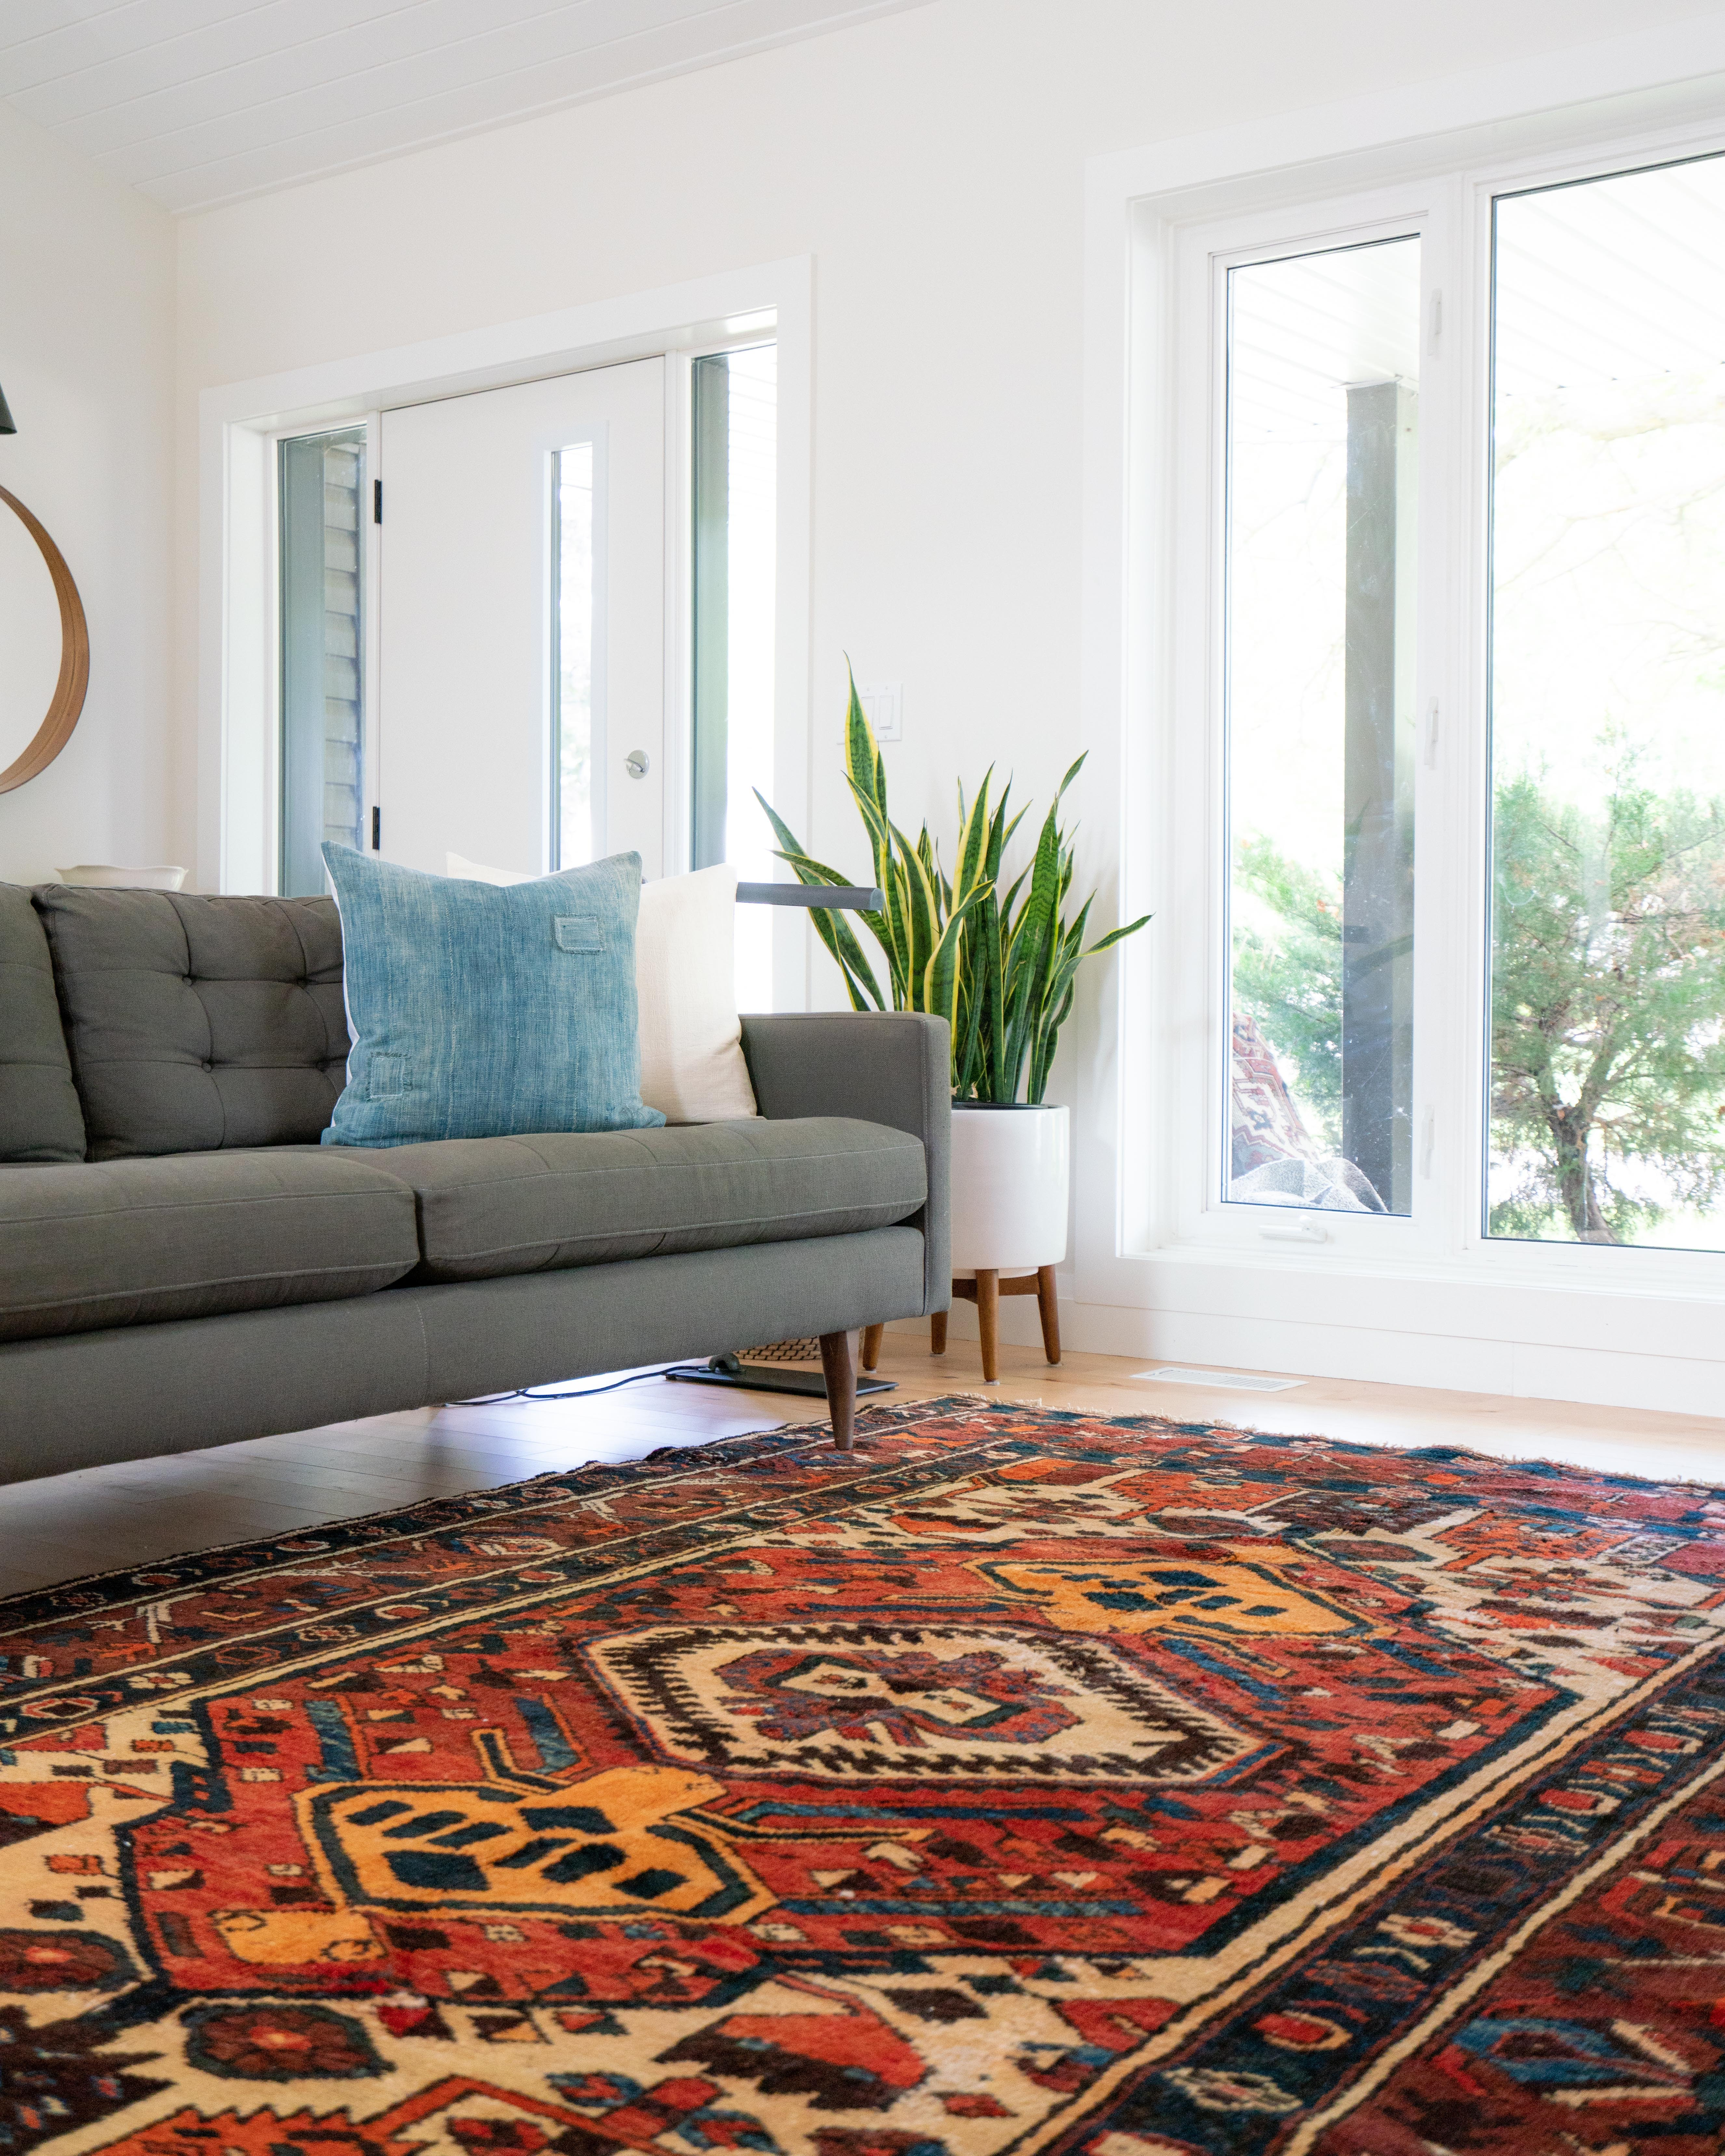 Teal 2 Seat Couch And Red Area Rug